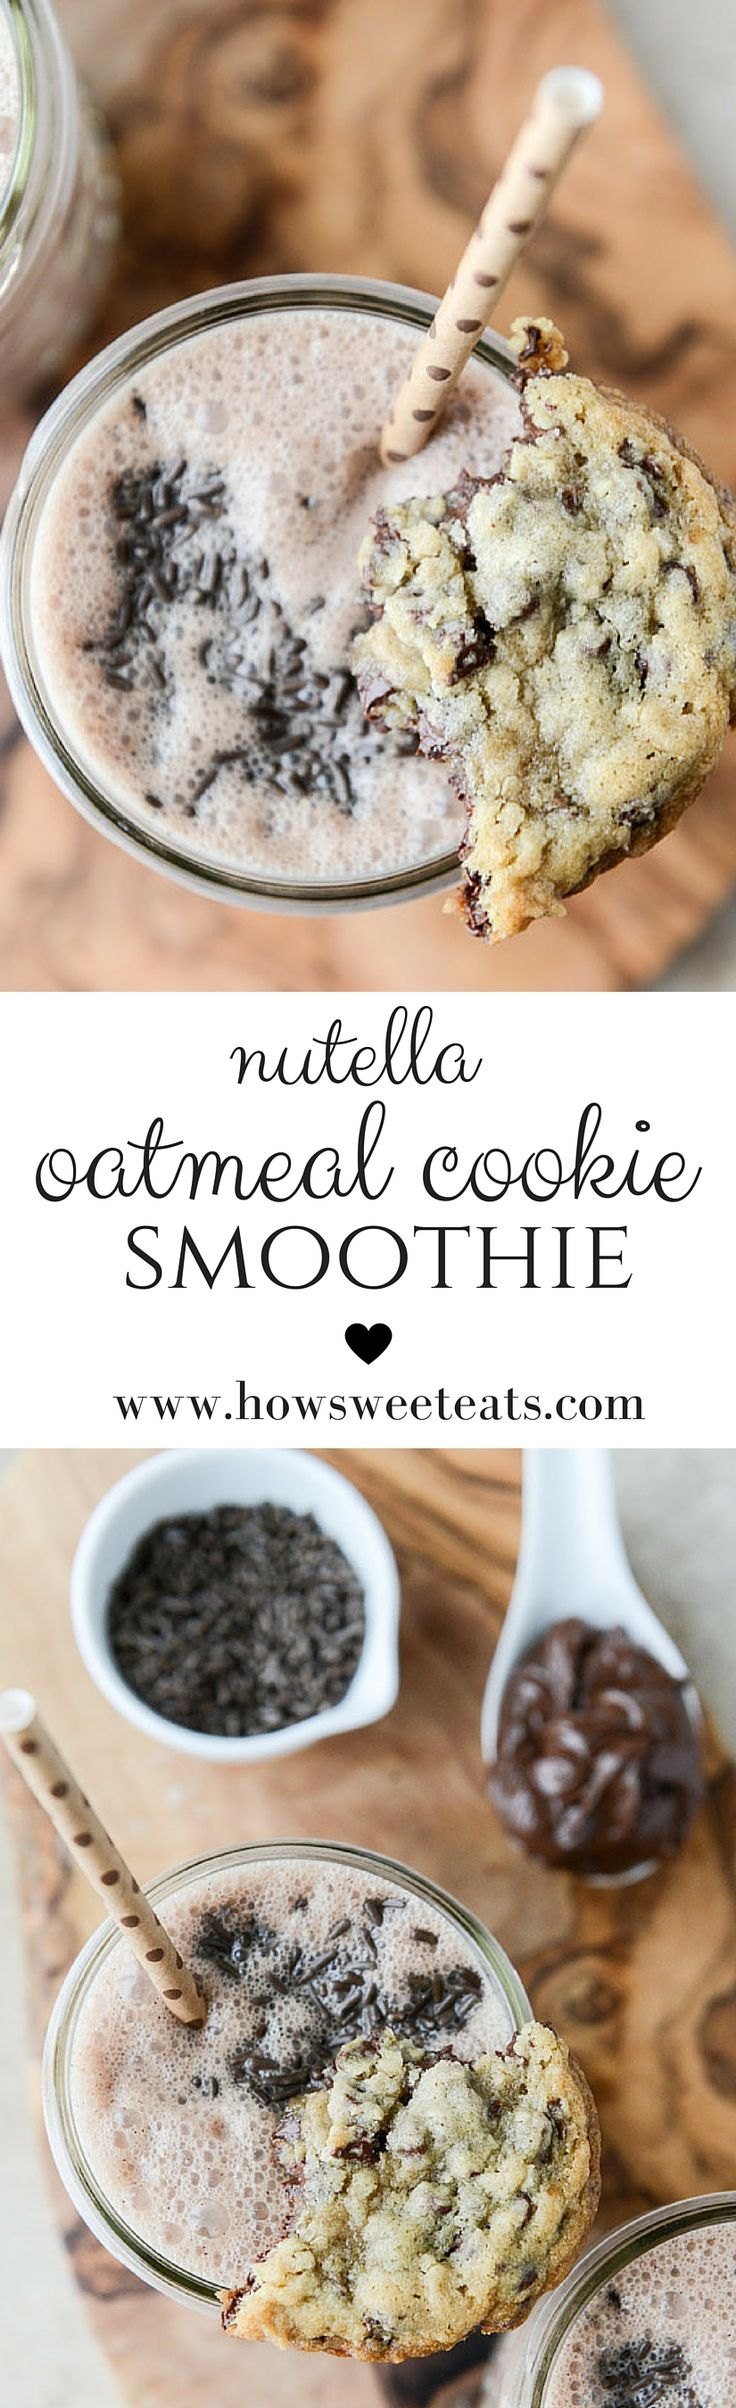 nutella oatmeal cookie smoothie I howsweeteats.com